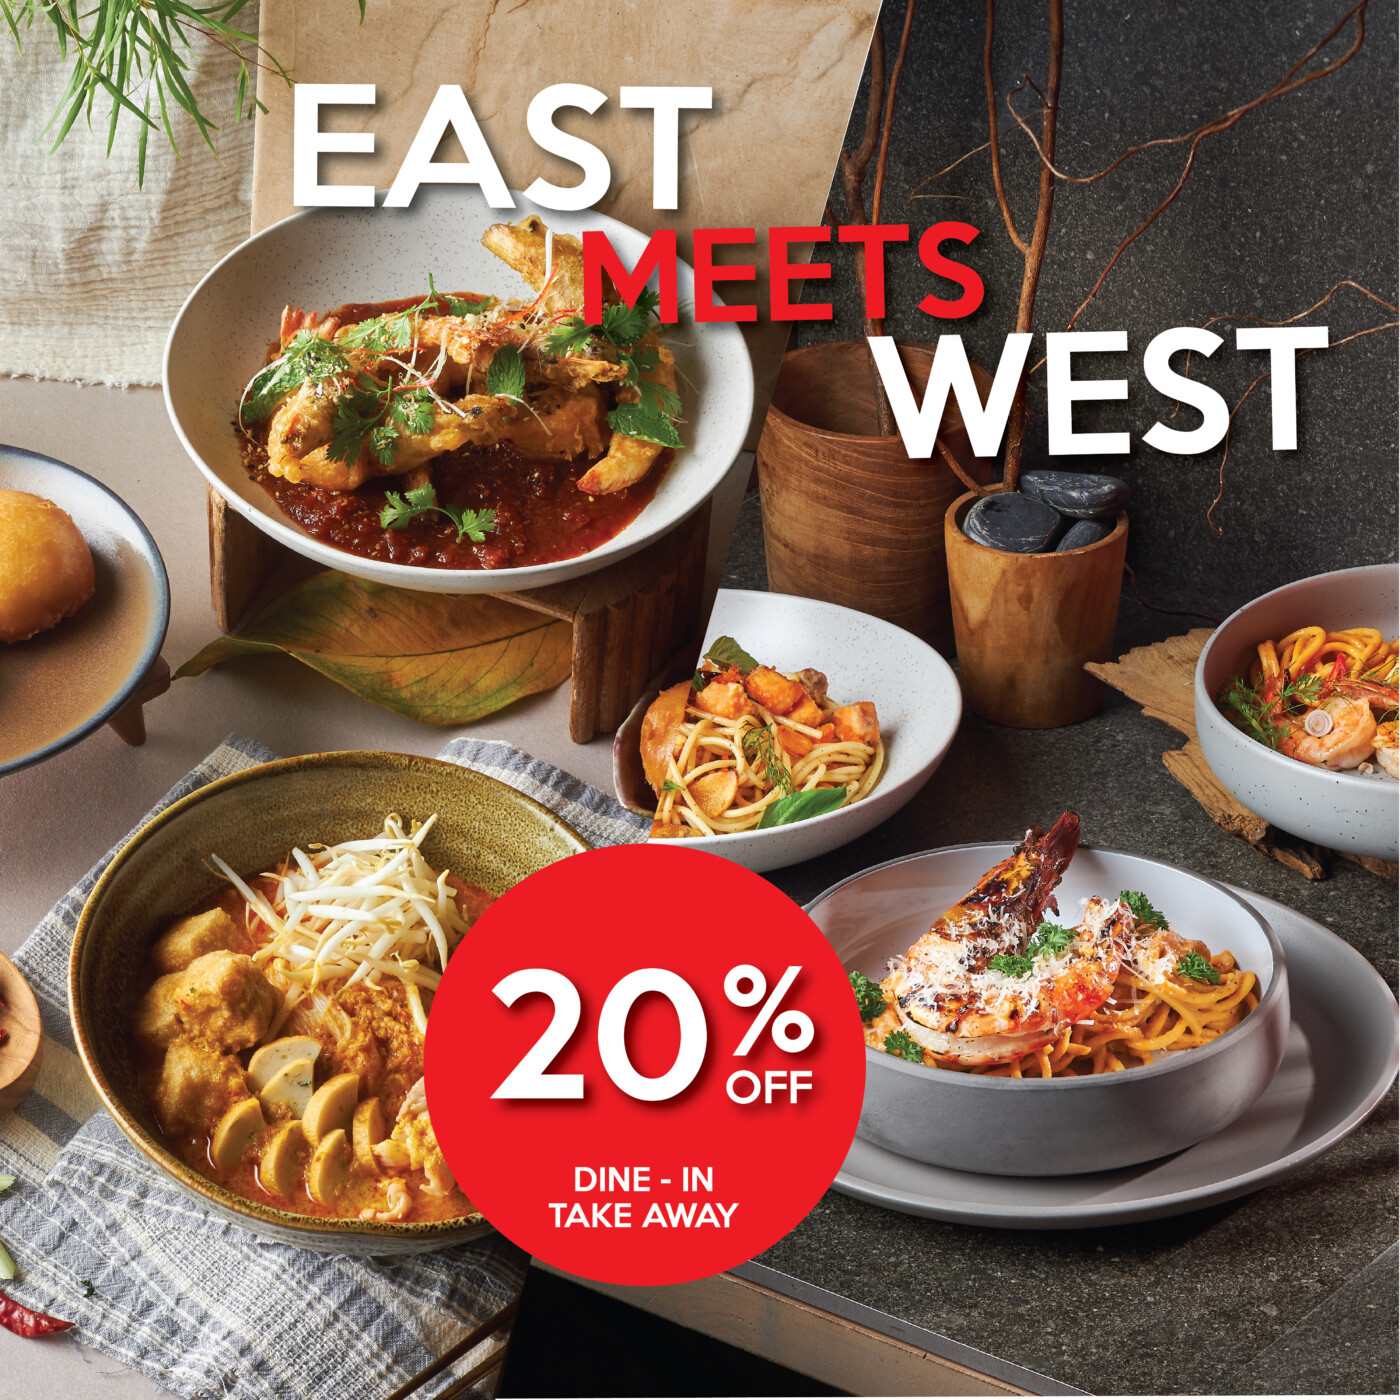 Enjoy discount 20 % when you dine in or take away